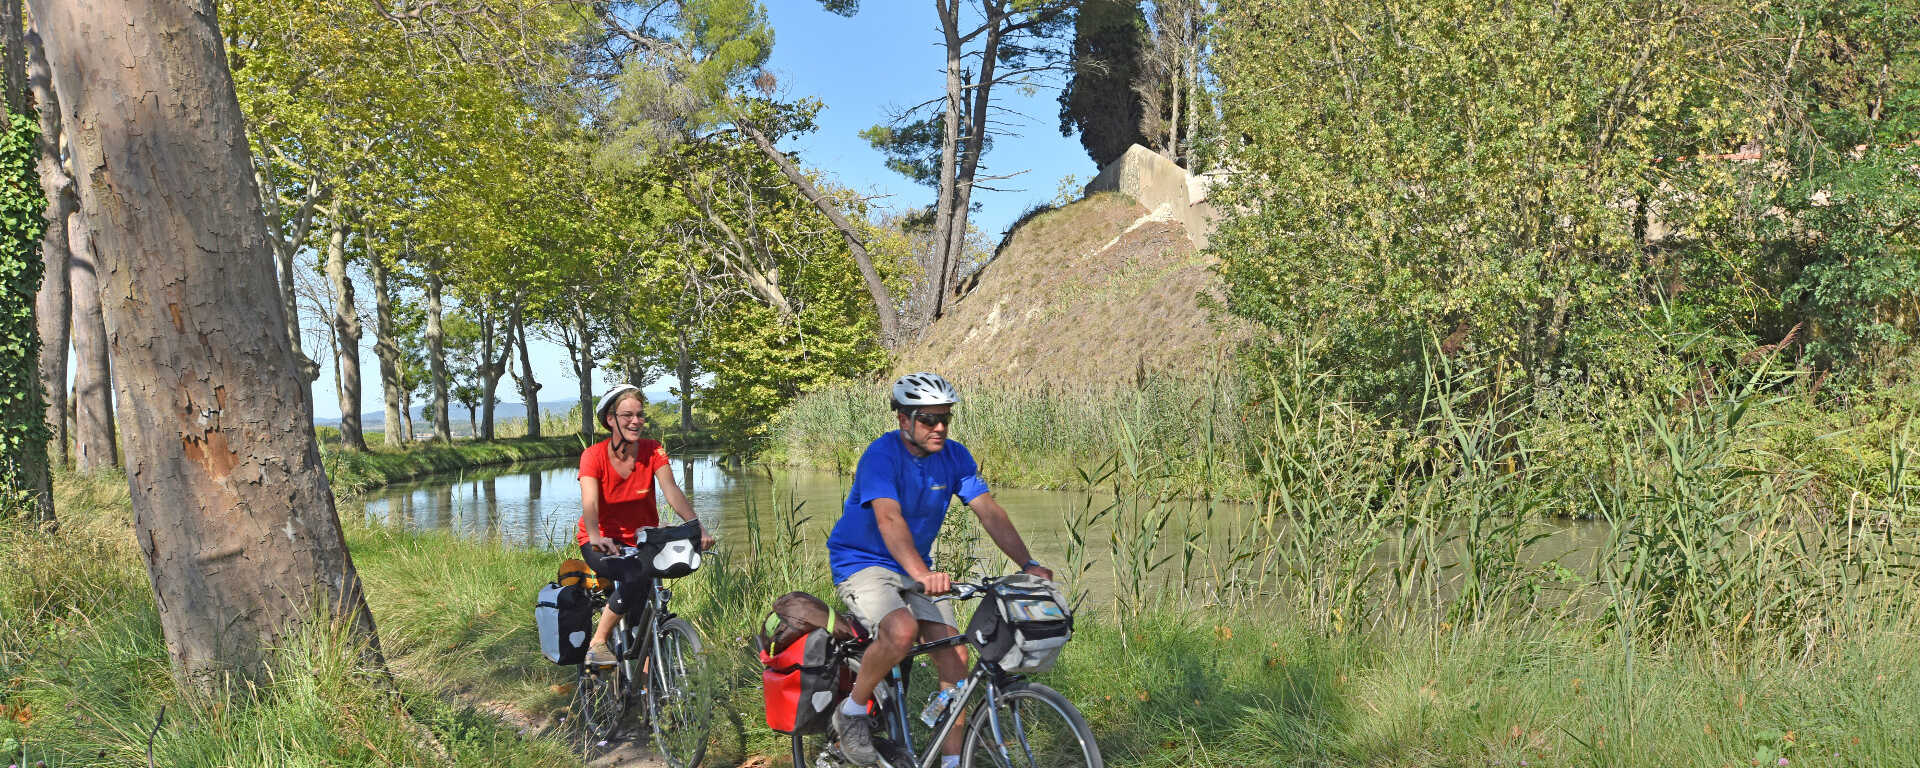 Fonkelnieuw The Canal du Midi by bike from Carcassonne to the Mediterranean Sea DT-48